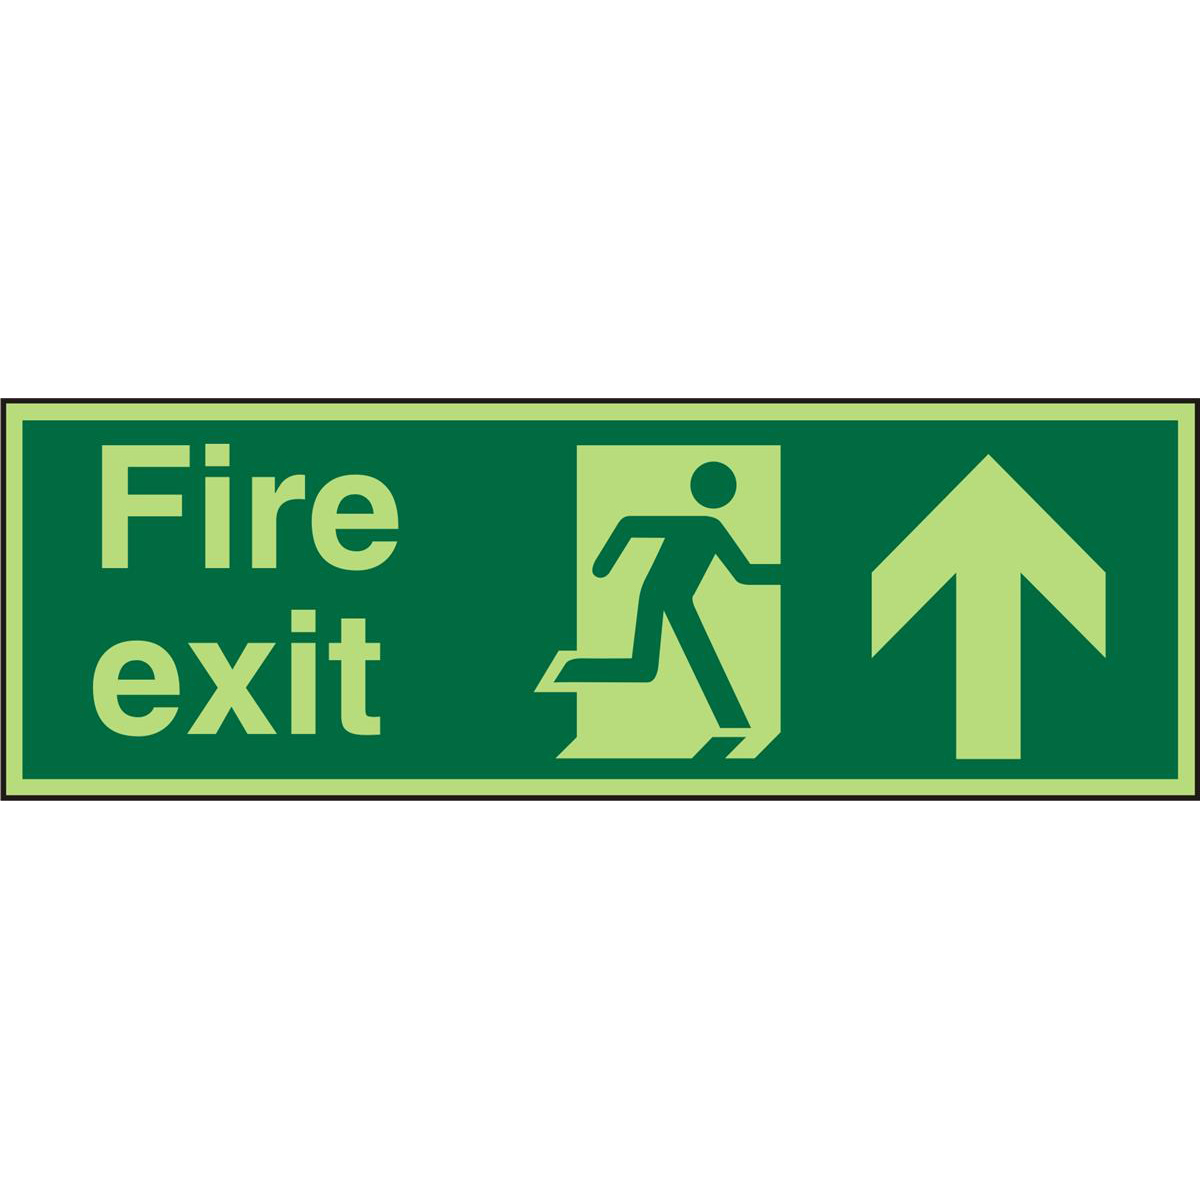 PhotolumSign 600x200 S/A FireExit Man Running Right&Arrow Up Ref PSP129SAV600x200 *Up to 10 Day Leadtime*